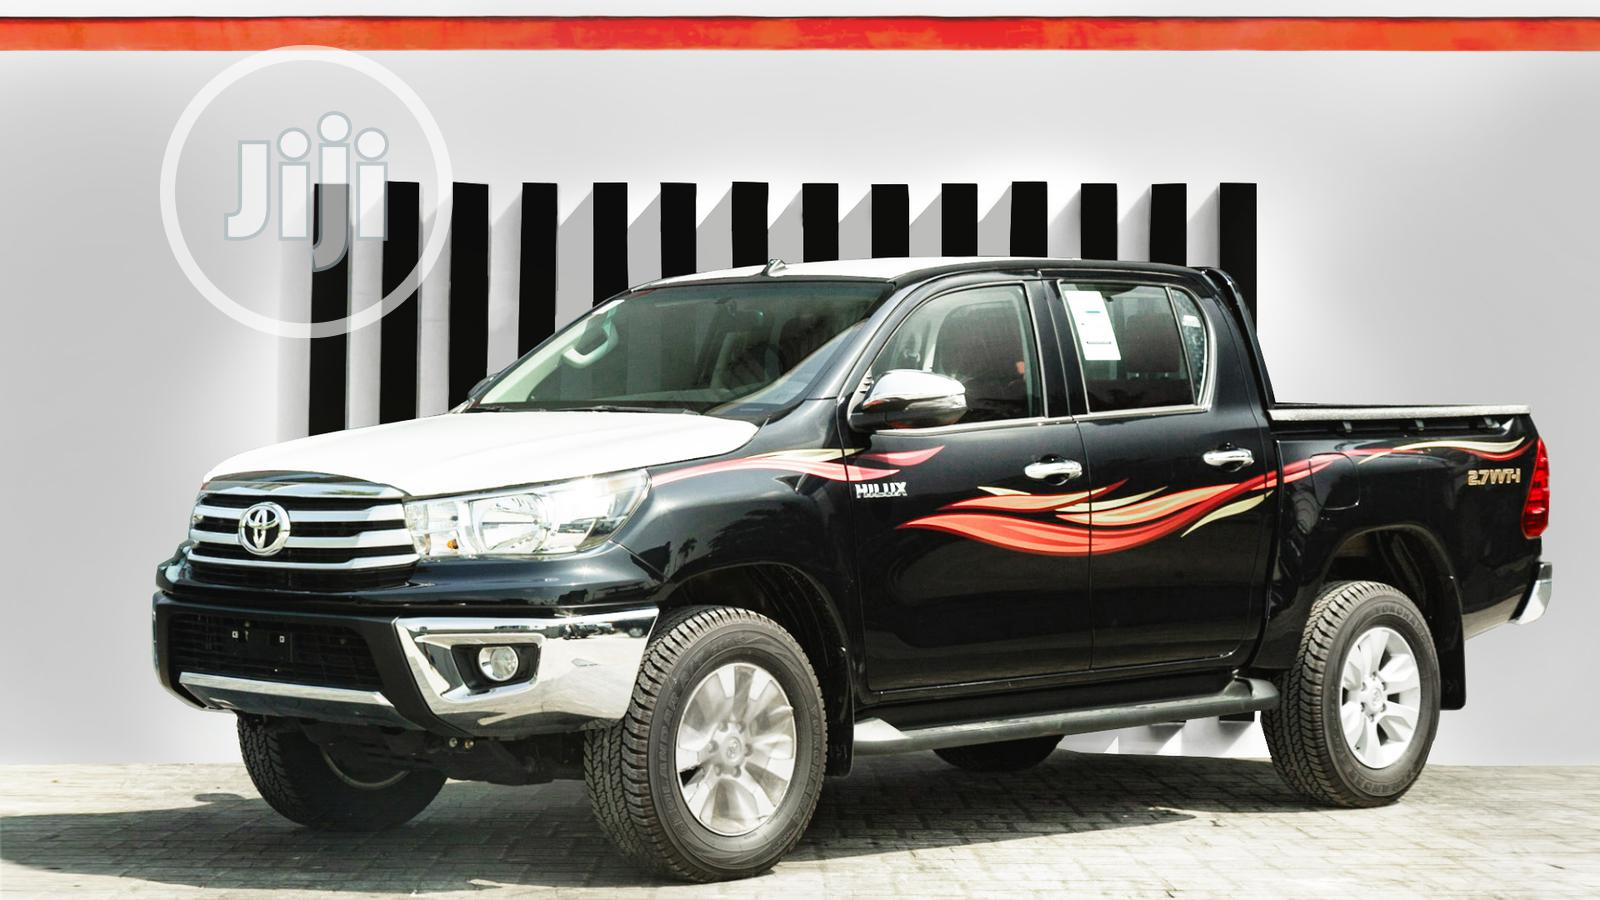 New Toyota Hilux 2020 Black | Cars for sale in Ikoyi, Lagos State, Nigeria